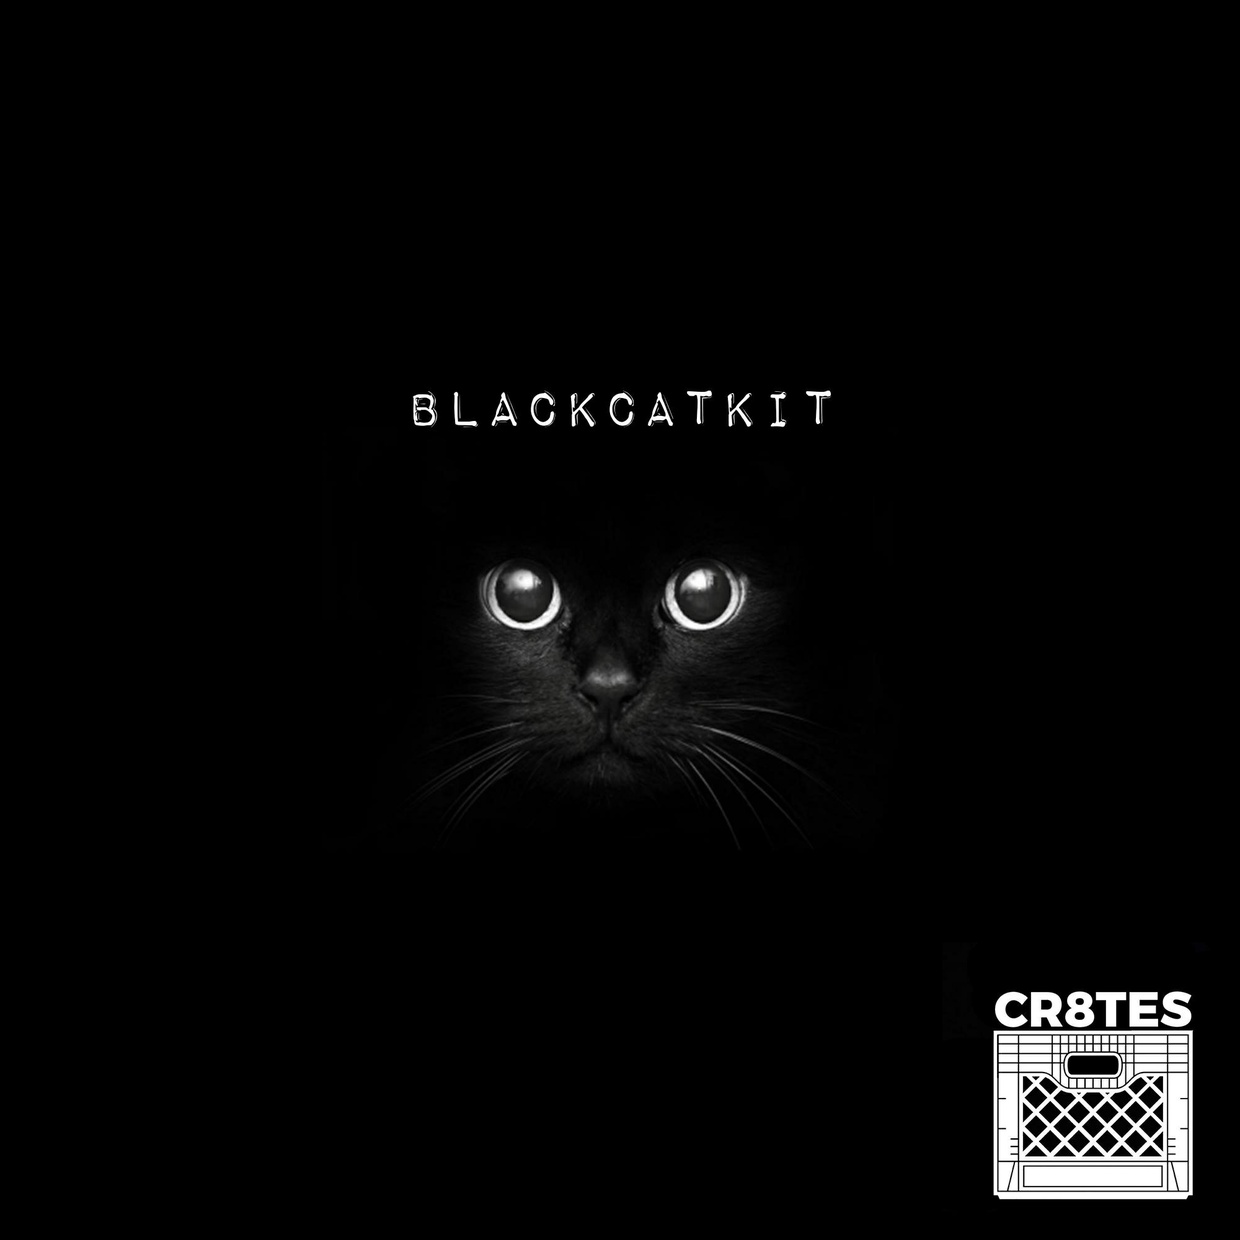 CR8TES - BLACK CAT KIT